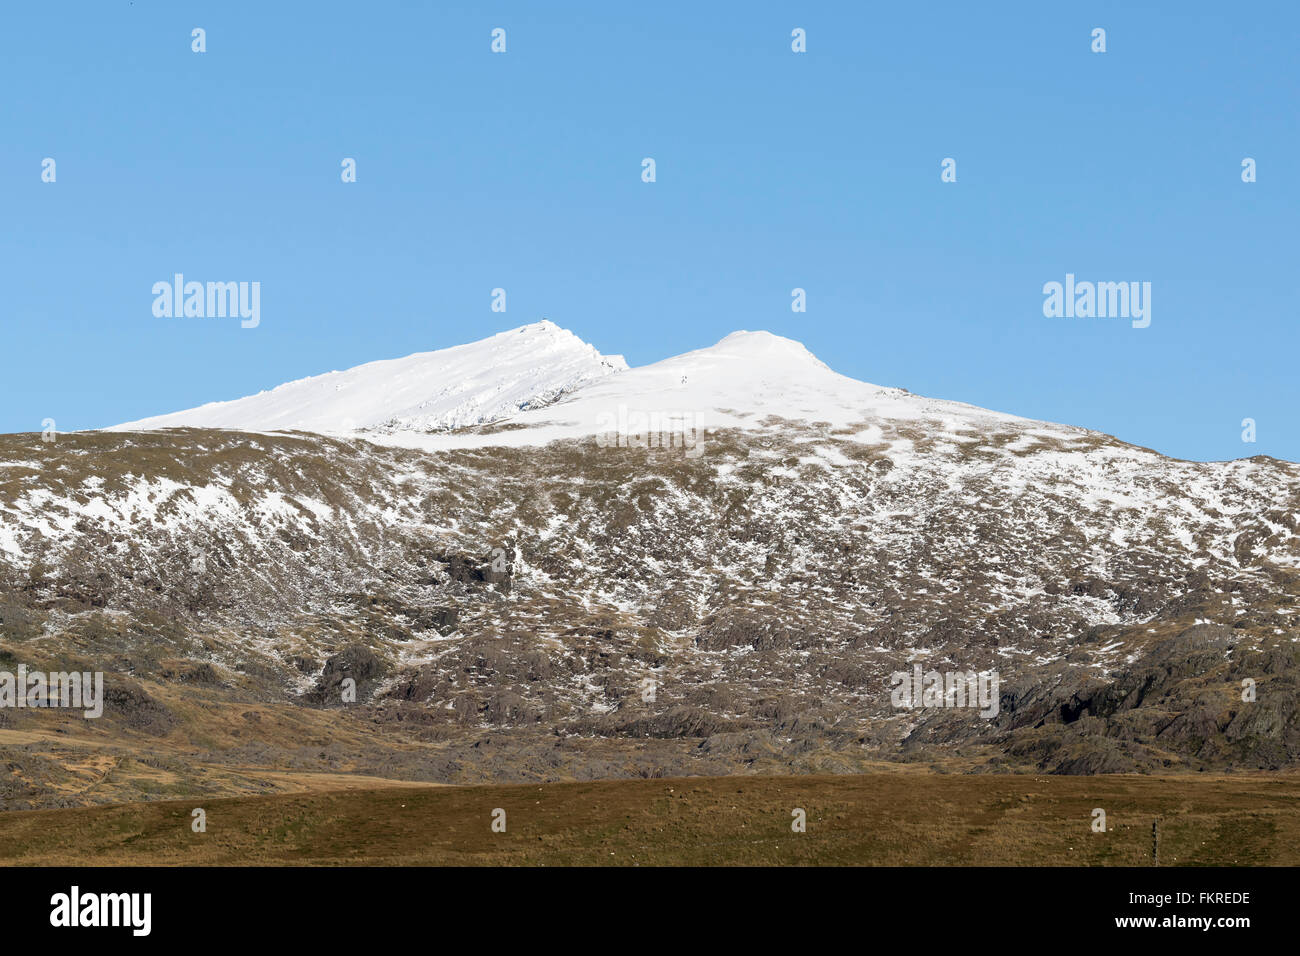 Yr Wyddfa or Snowdon mountain with Bwlch Main to the right Stock Photo